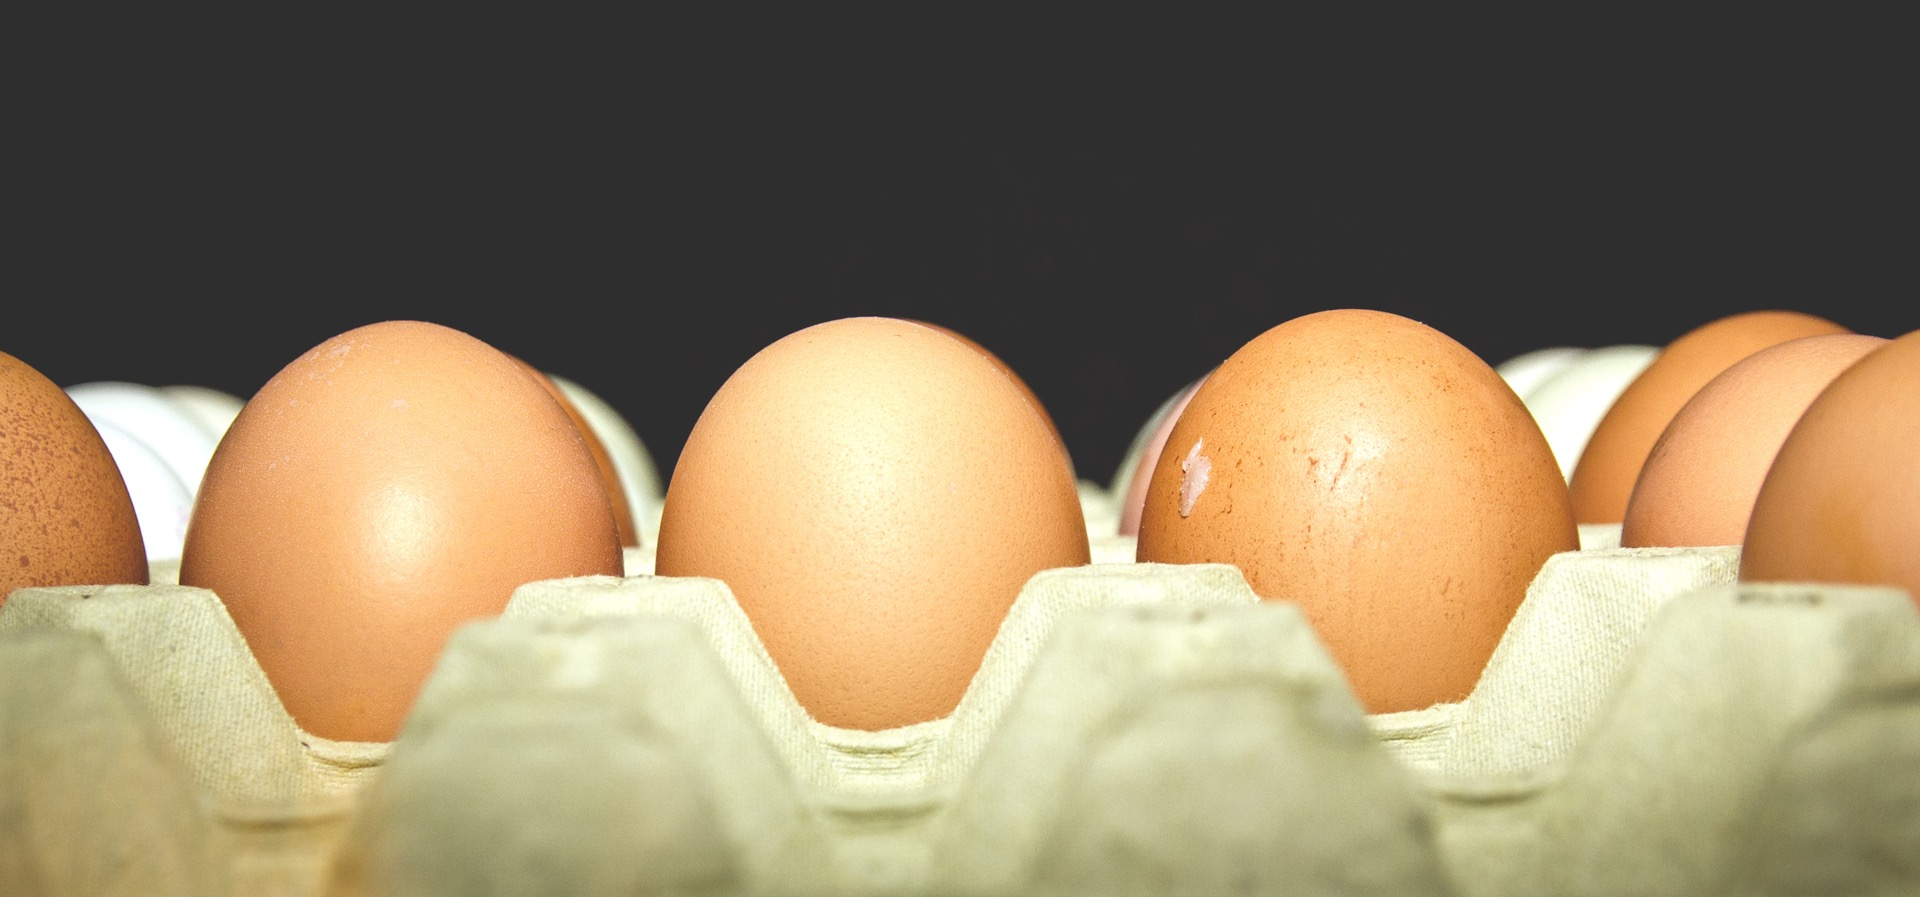 The Good, the Bad and the Eggly...